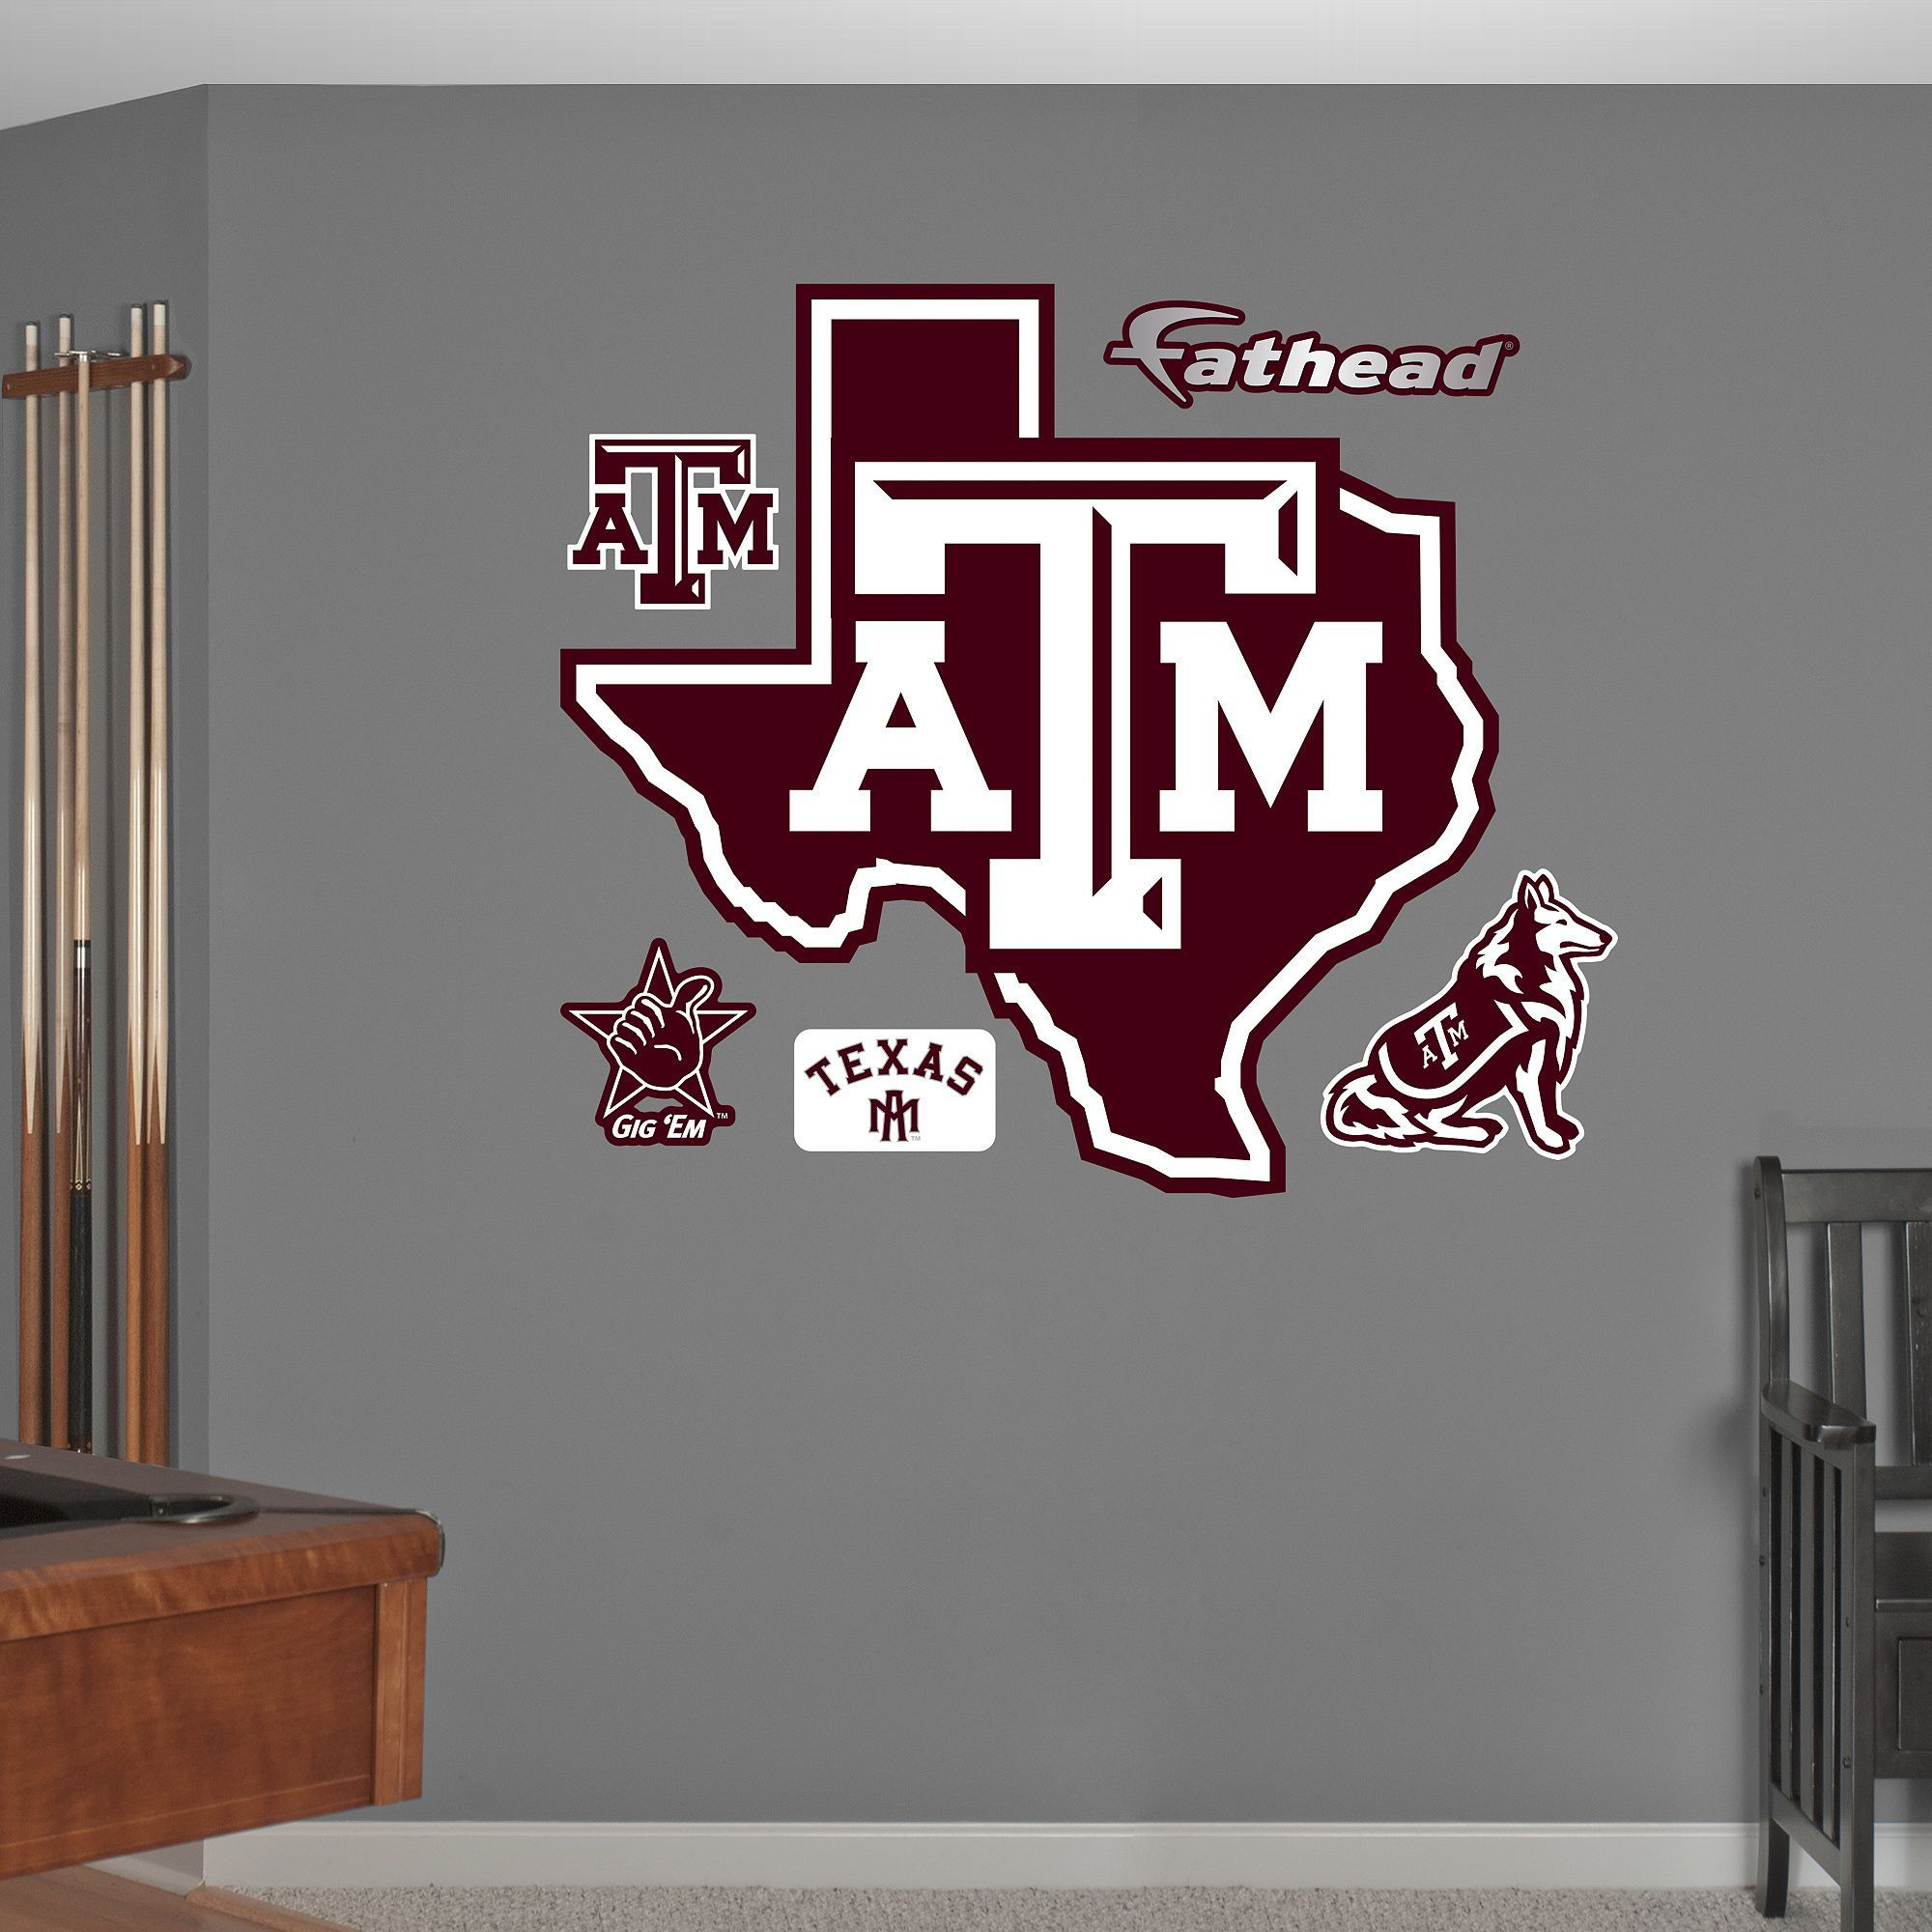 Fathead Texas A&M Aggies Lonestar Logo Wall Decals